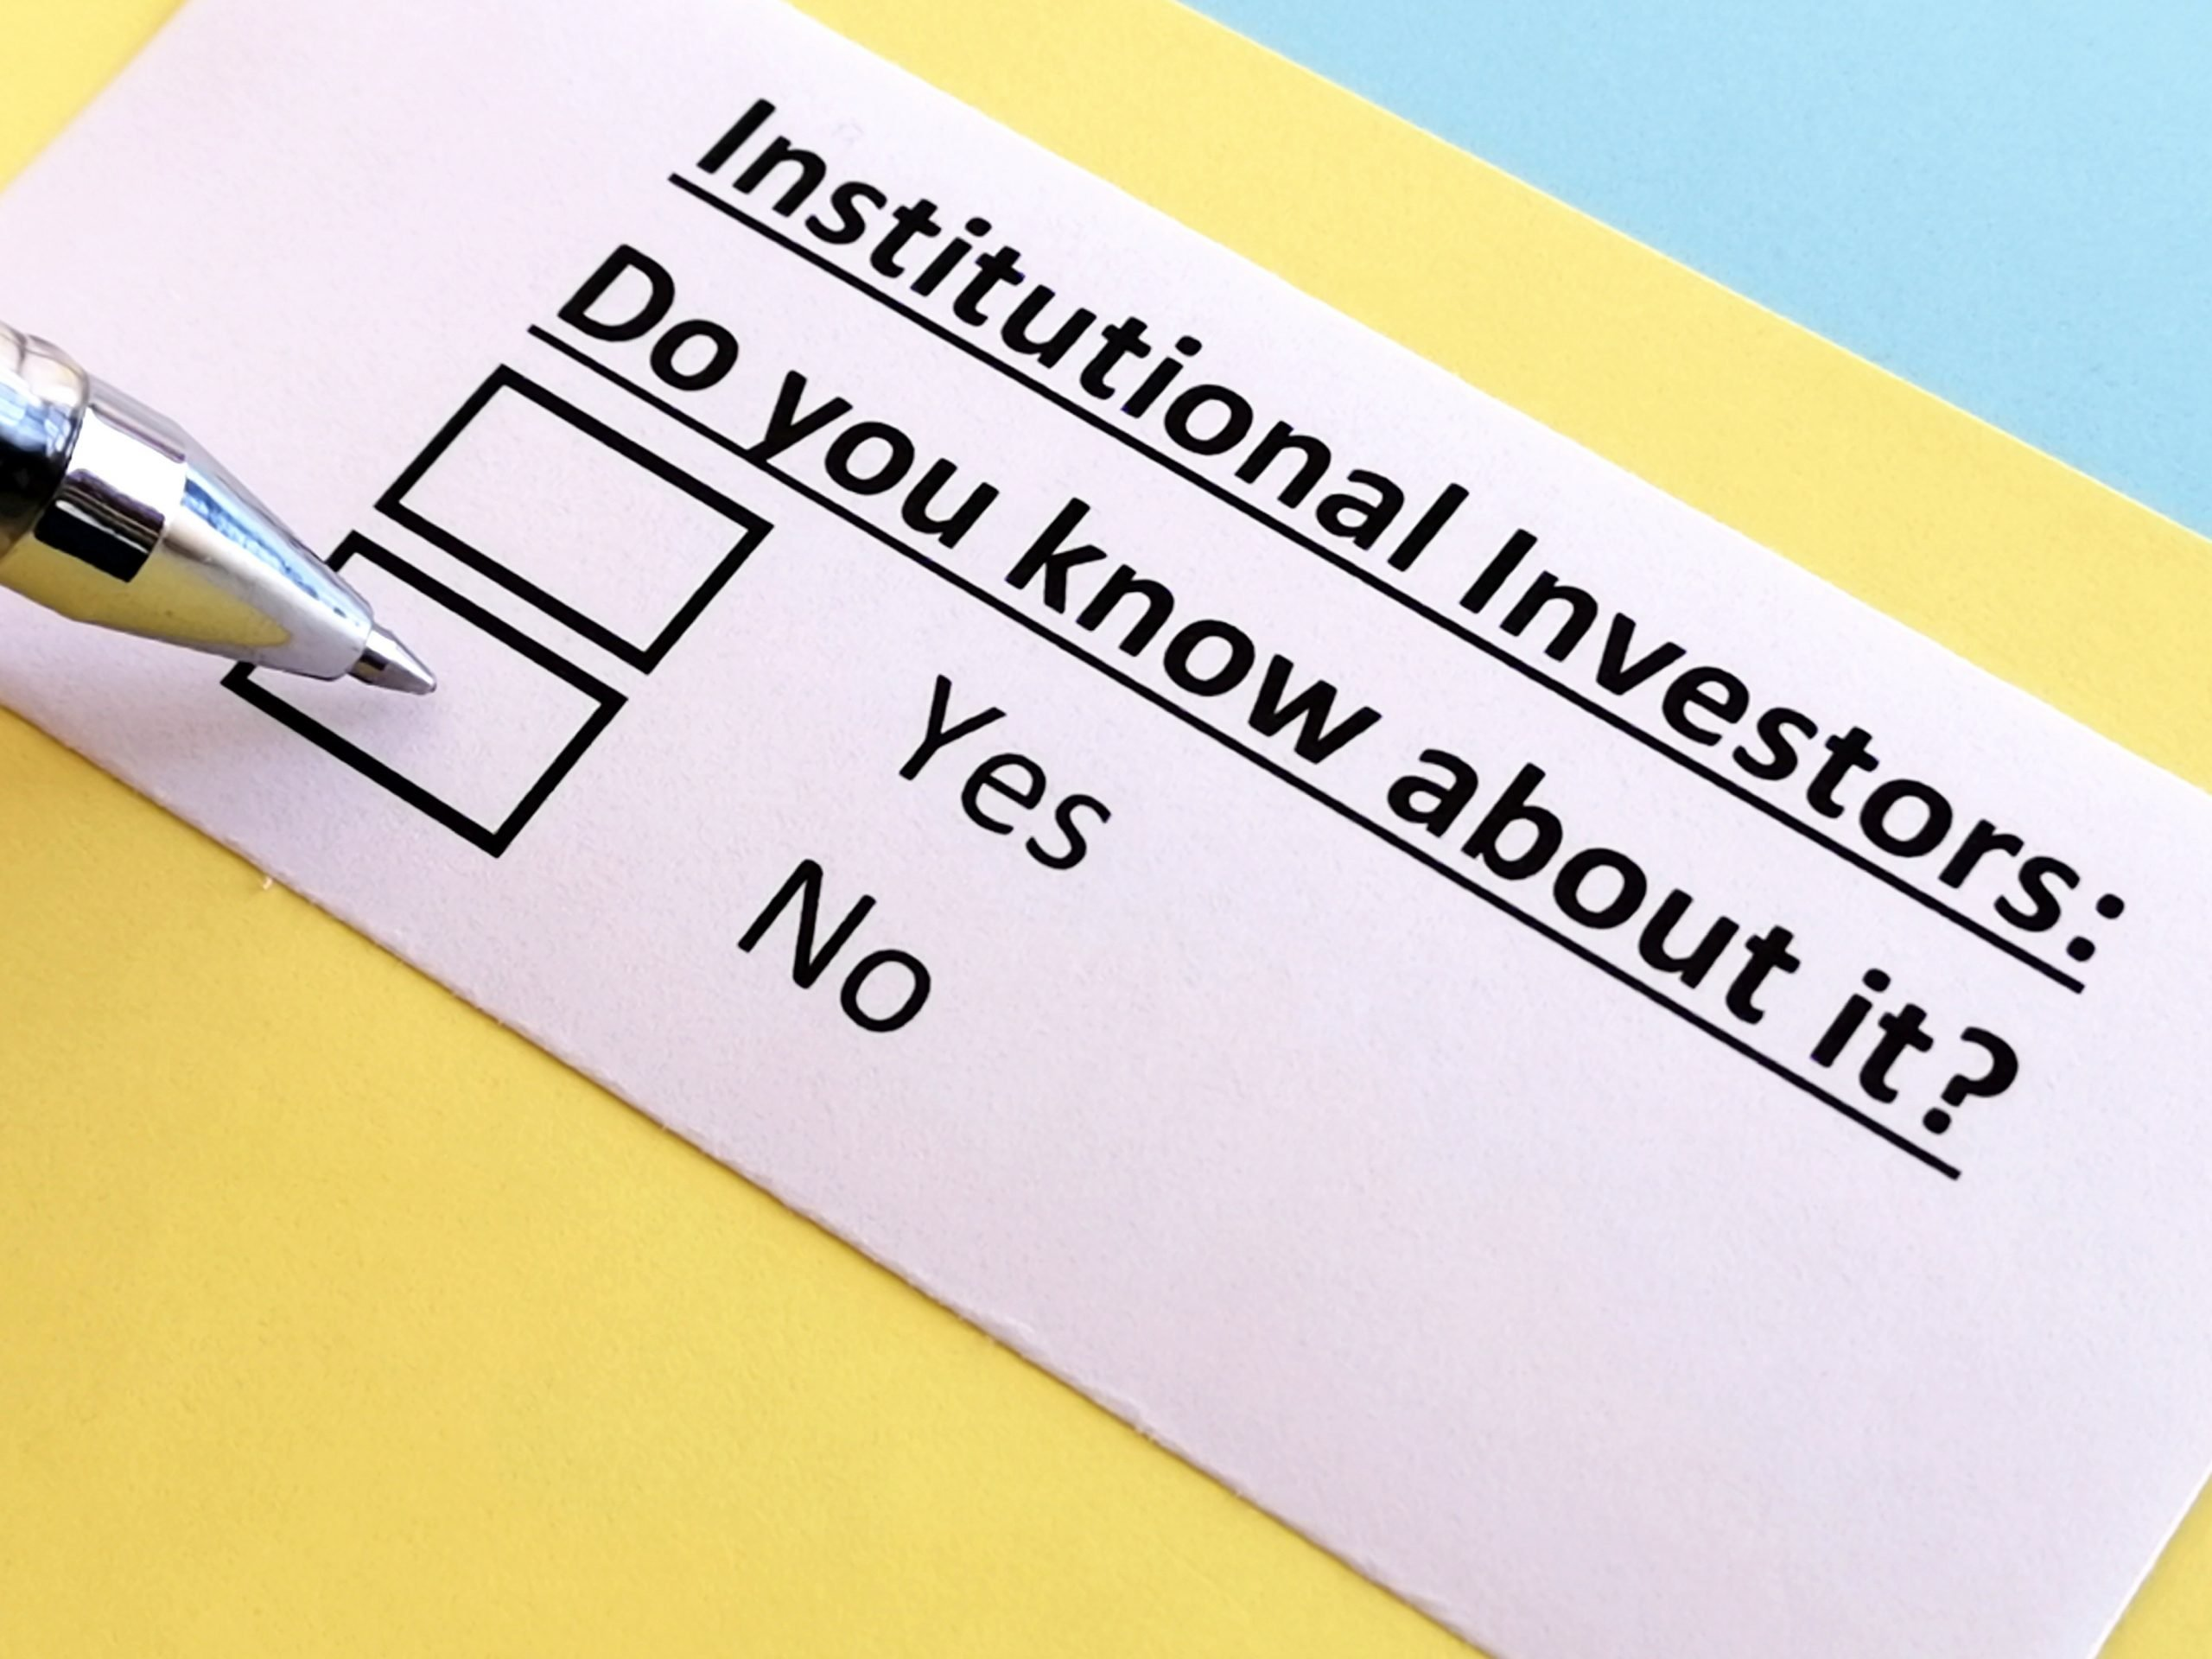 82% Of Institutional Investors Plan To Increase Cryptocurrency Exposure, According To Survey